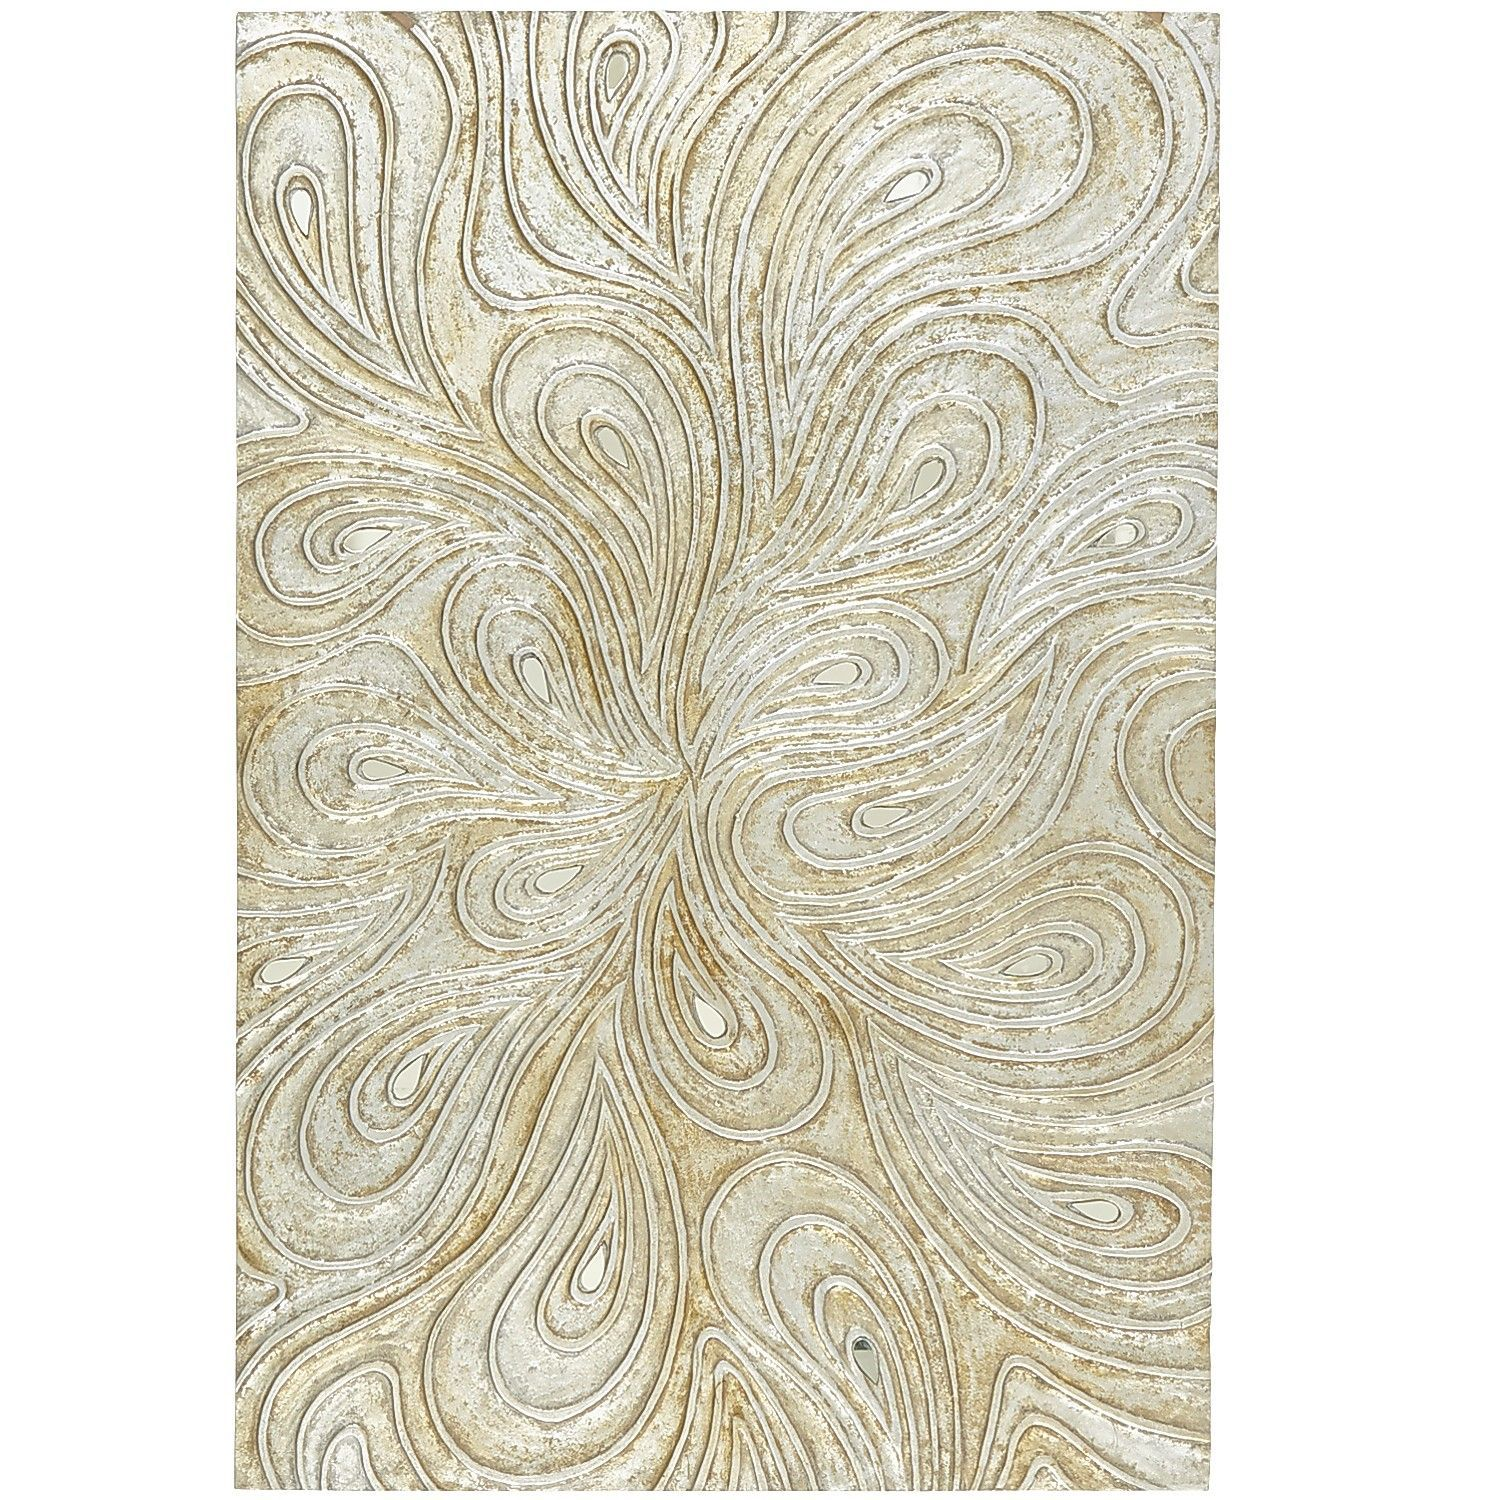 Silver Swirls Wall Panel For The Home I Have Pinterest